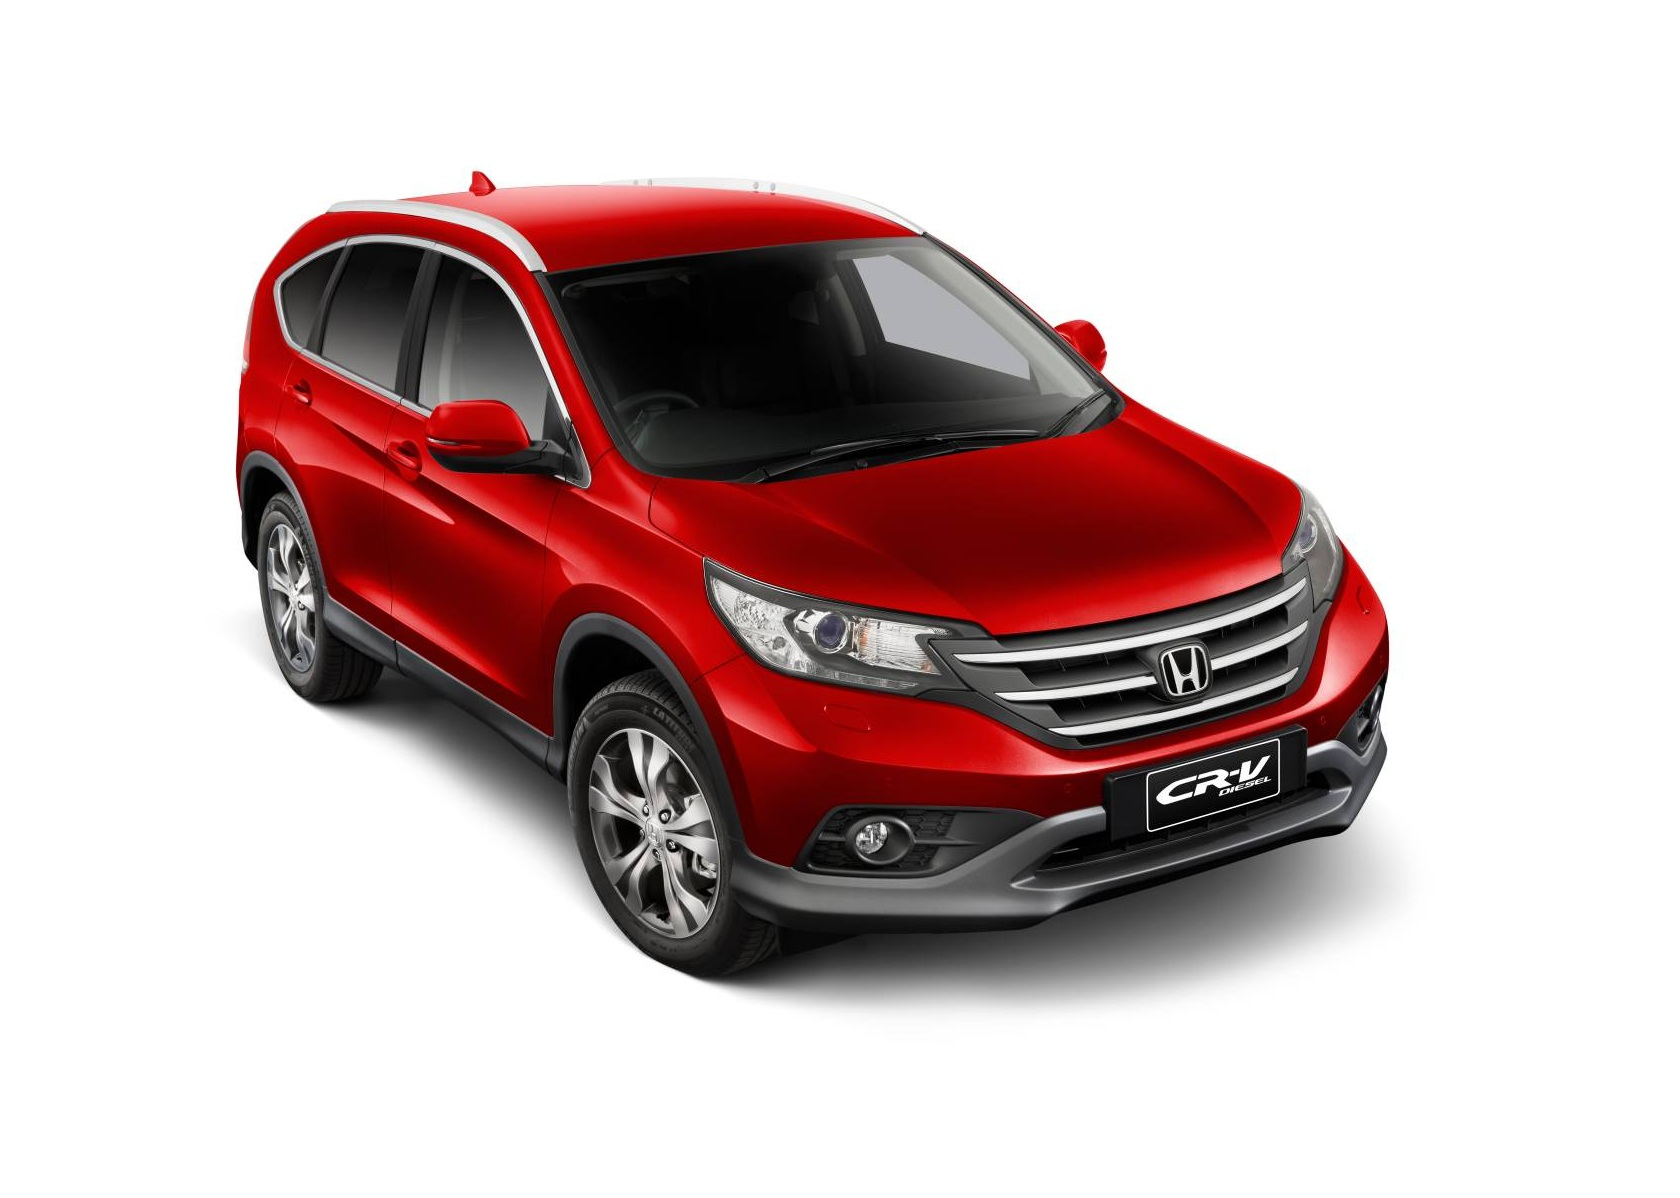 introduction of honda motocar mnc As president of the honda motor company, soichiro honda began producing   forgot the day he ran, a small and insignificant figure, after that motorcar  when  honda first introduced its motorcycles into the united states in.